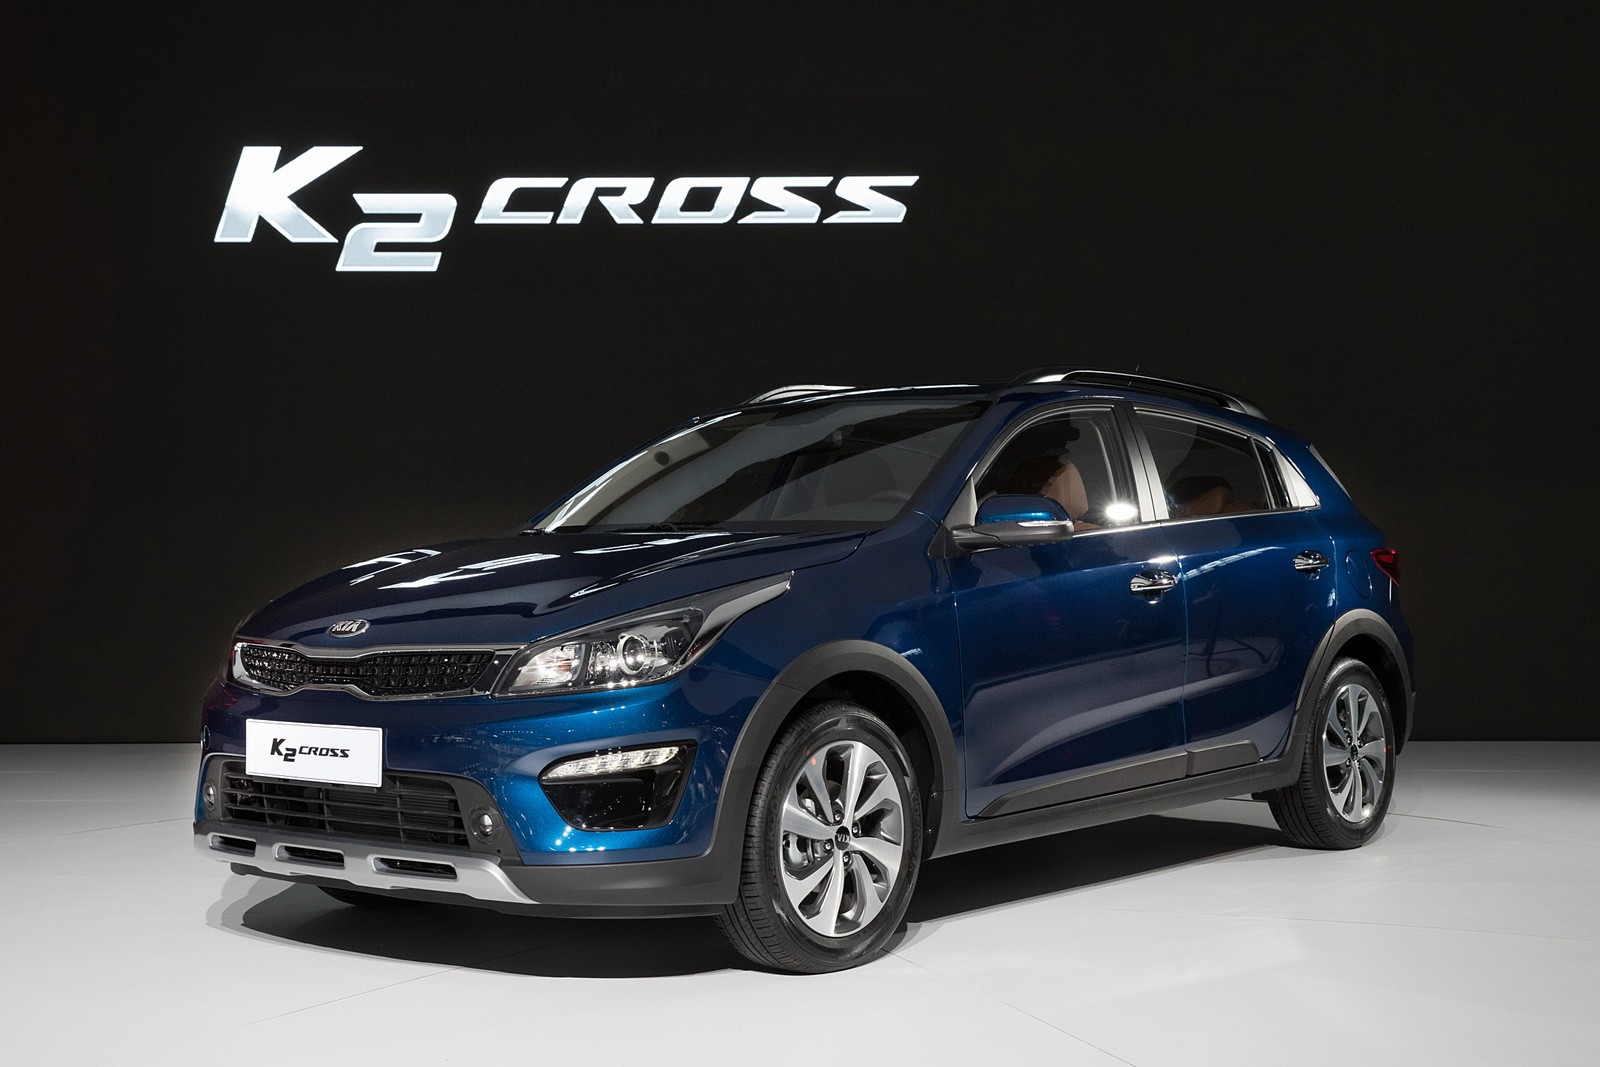 2017 kia k2 cross and pegas sedan debut in shanghai are forbidden fruit autoevolution. Black Bedroom Furniture Sets. Home Design Ideas